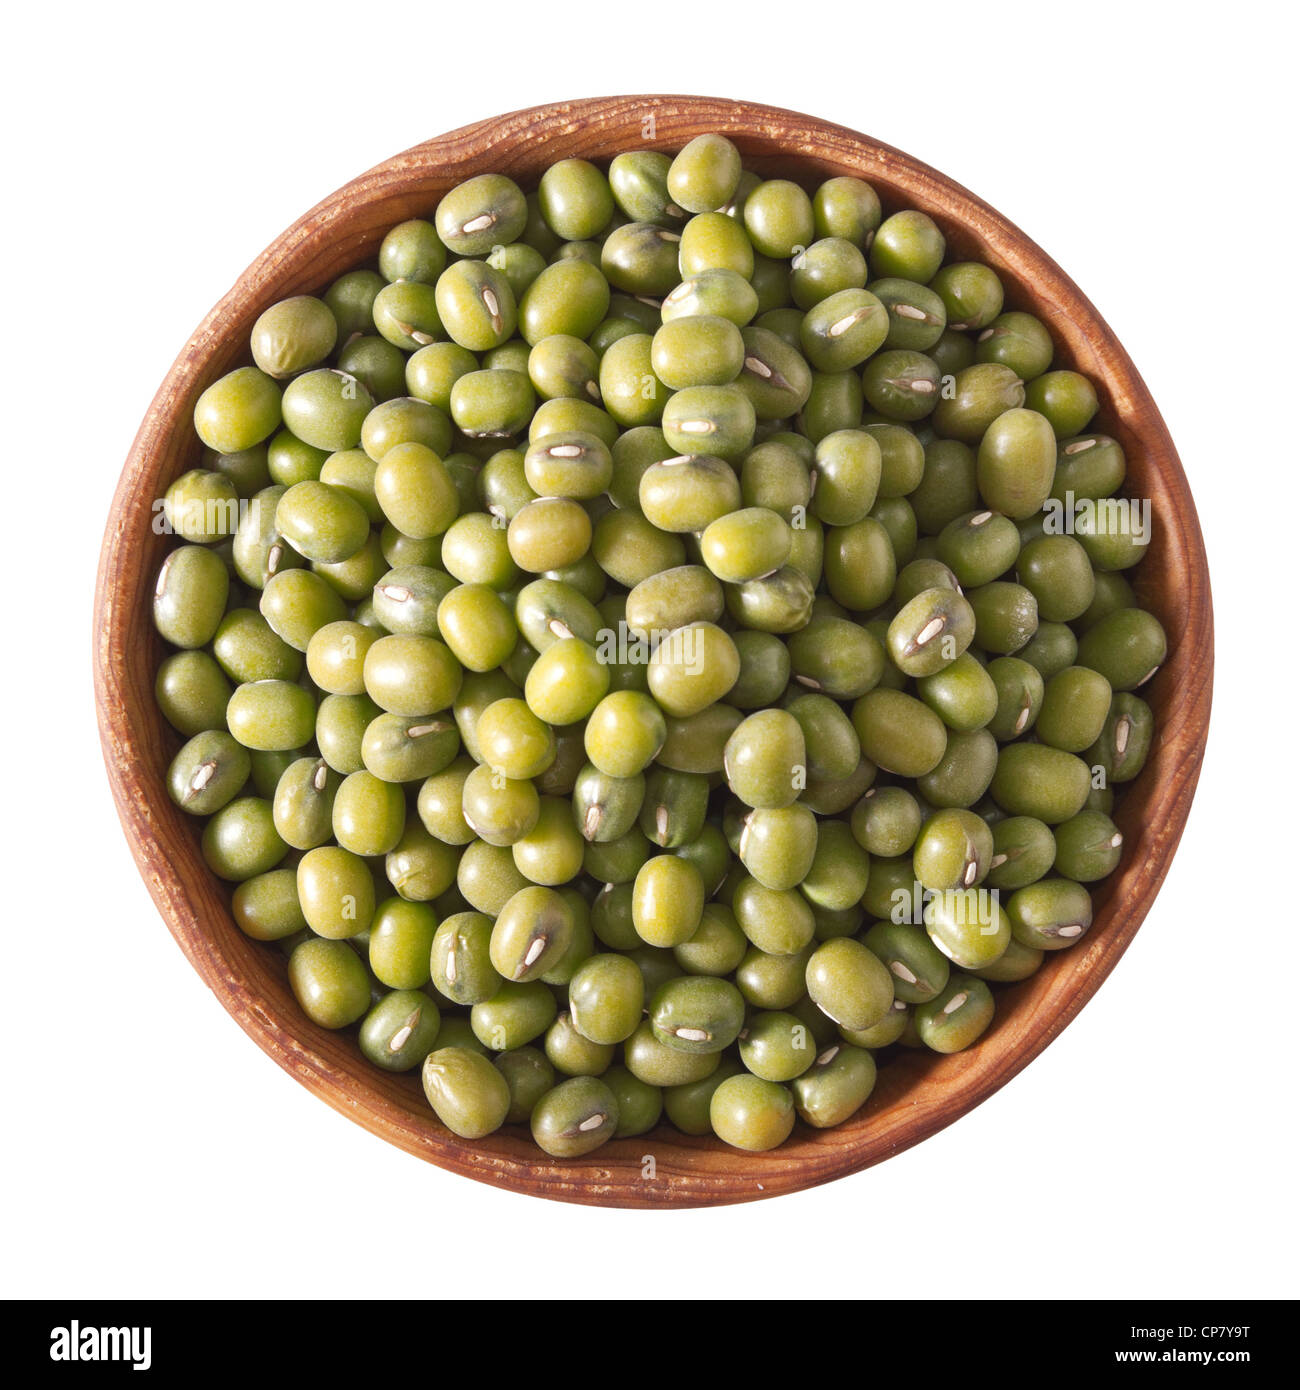 wooden bowl full of green mung beans isolated on white background - Stock Image